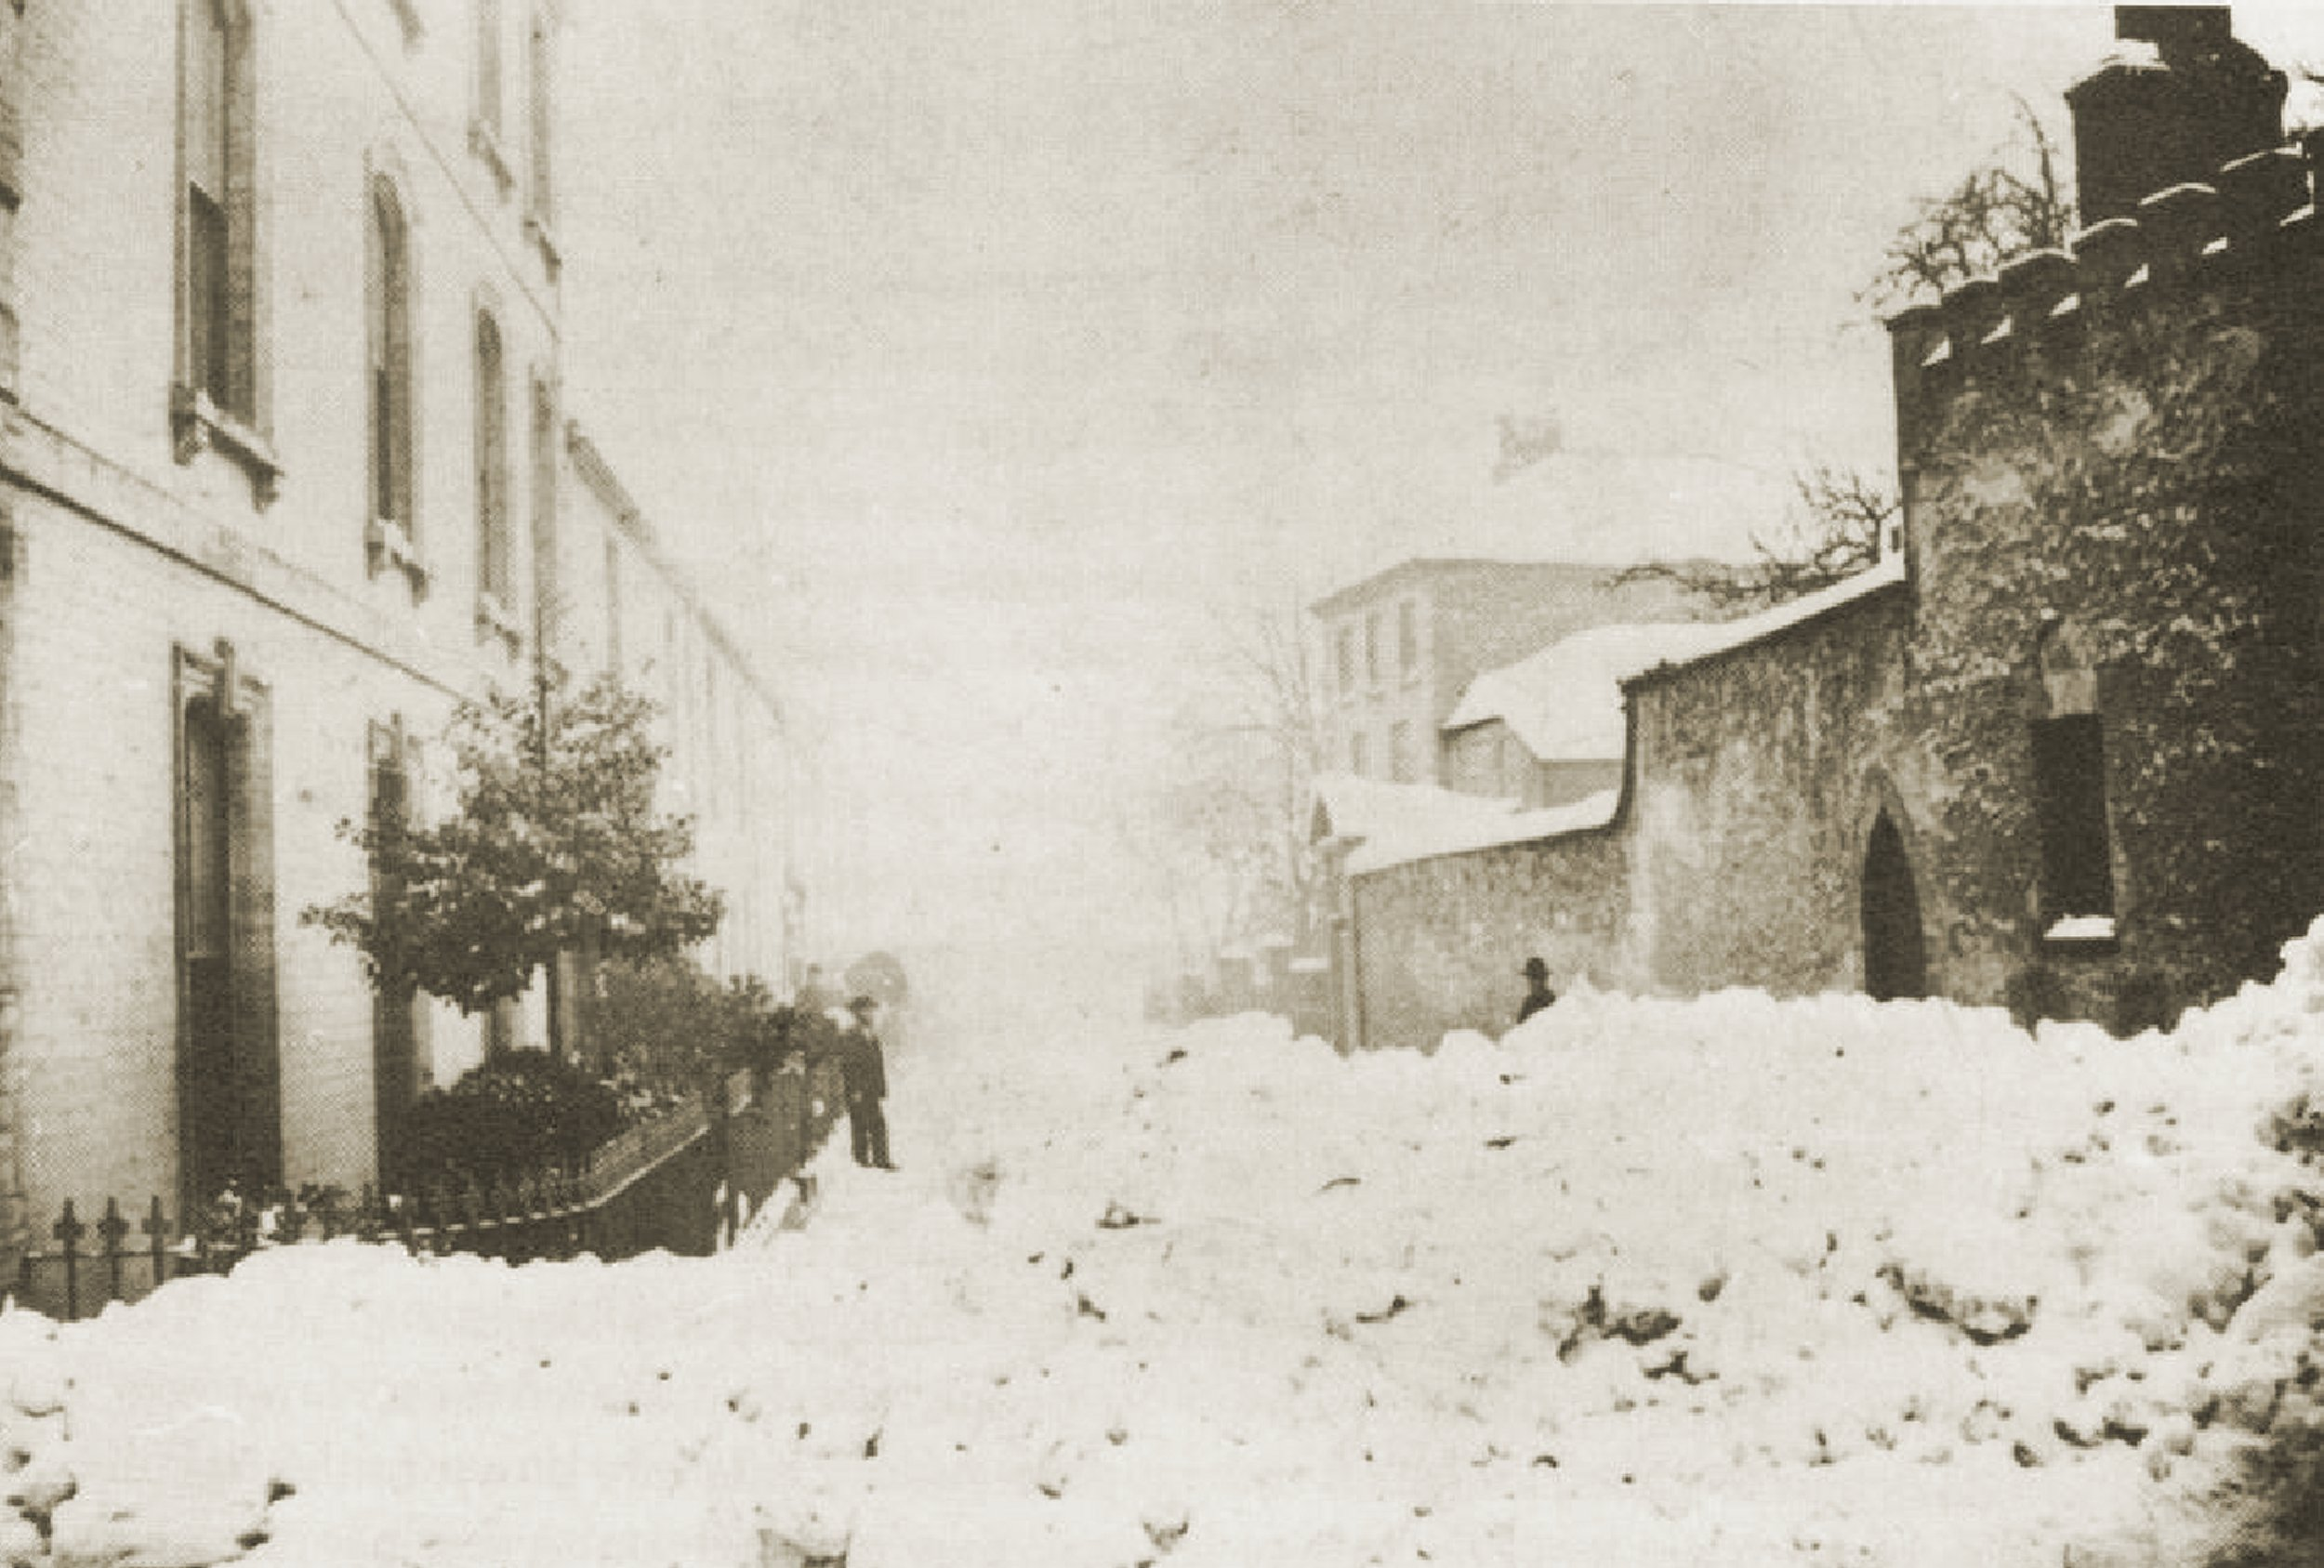 Peter Street 1 - the great snow 1881